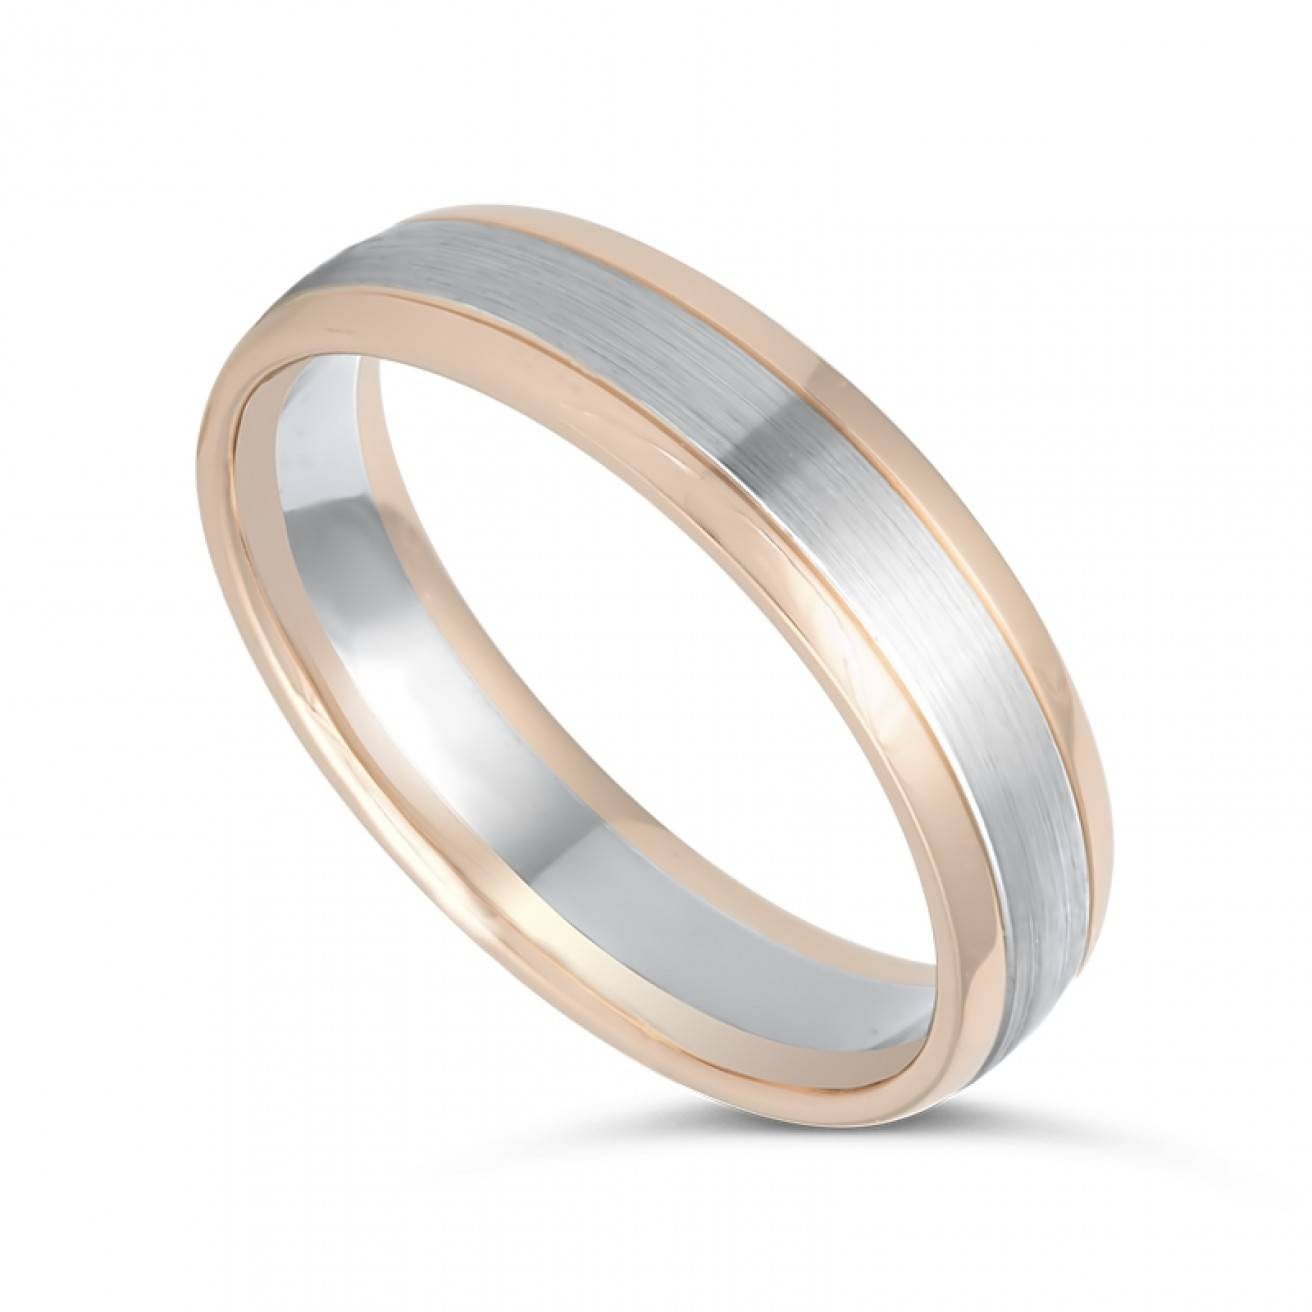 Wedding Rings : Palladium Milgrain Wedding Band Palladium Vs Intended For Millgrain Wedding Bands (View 15 of 15)